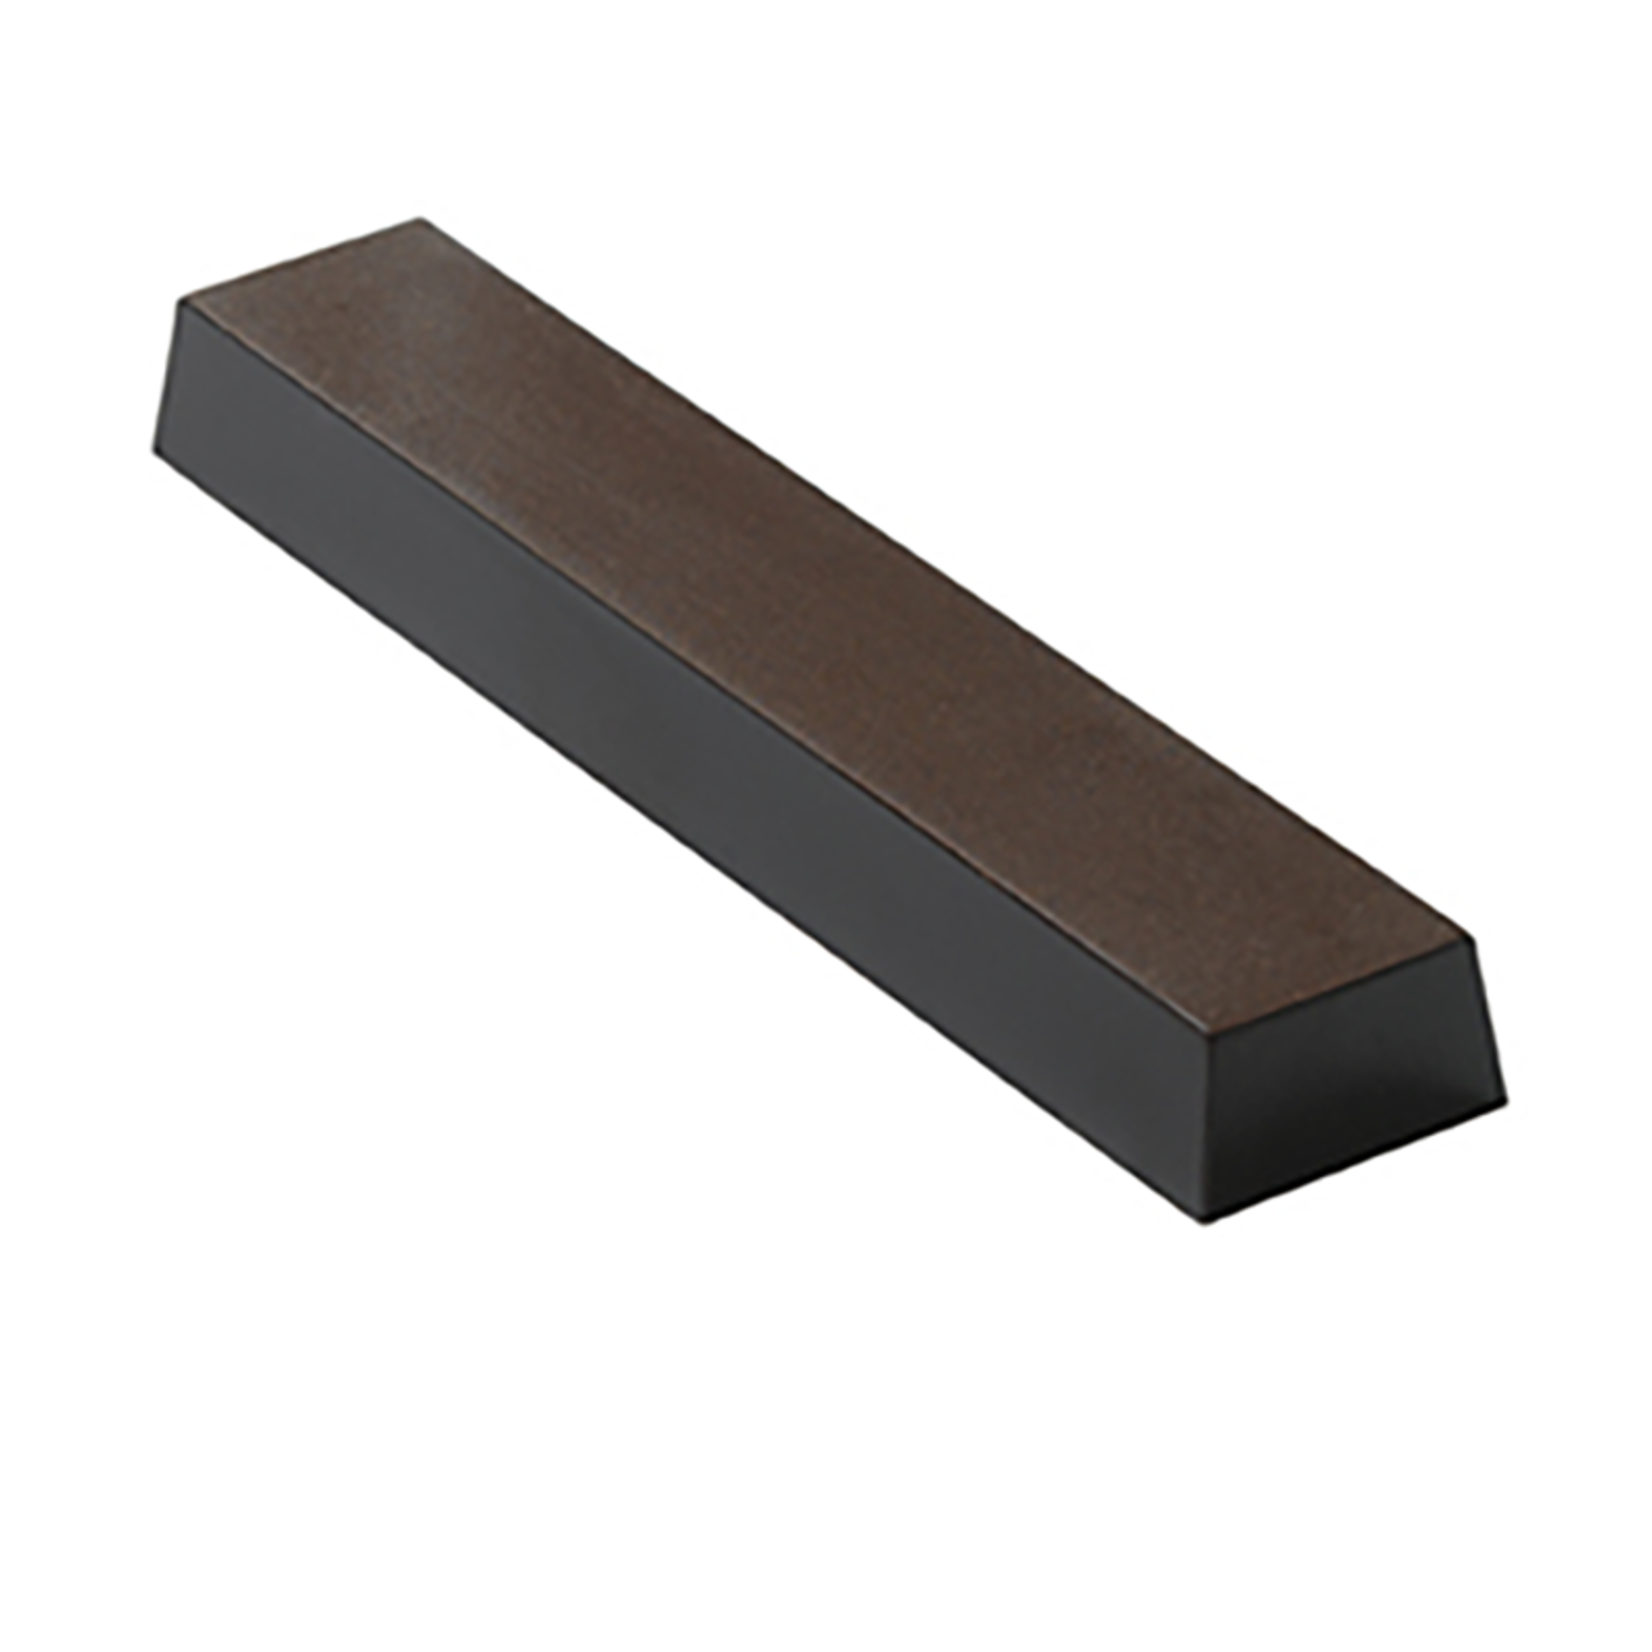 Cacao Barry Cacao Barry - Tritan Chocolate Mold - Rectangle Snacking Bar (10 cavity), MLD-090528-M00